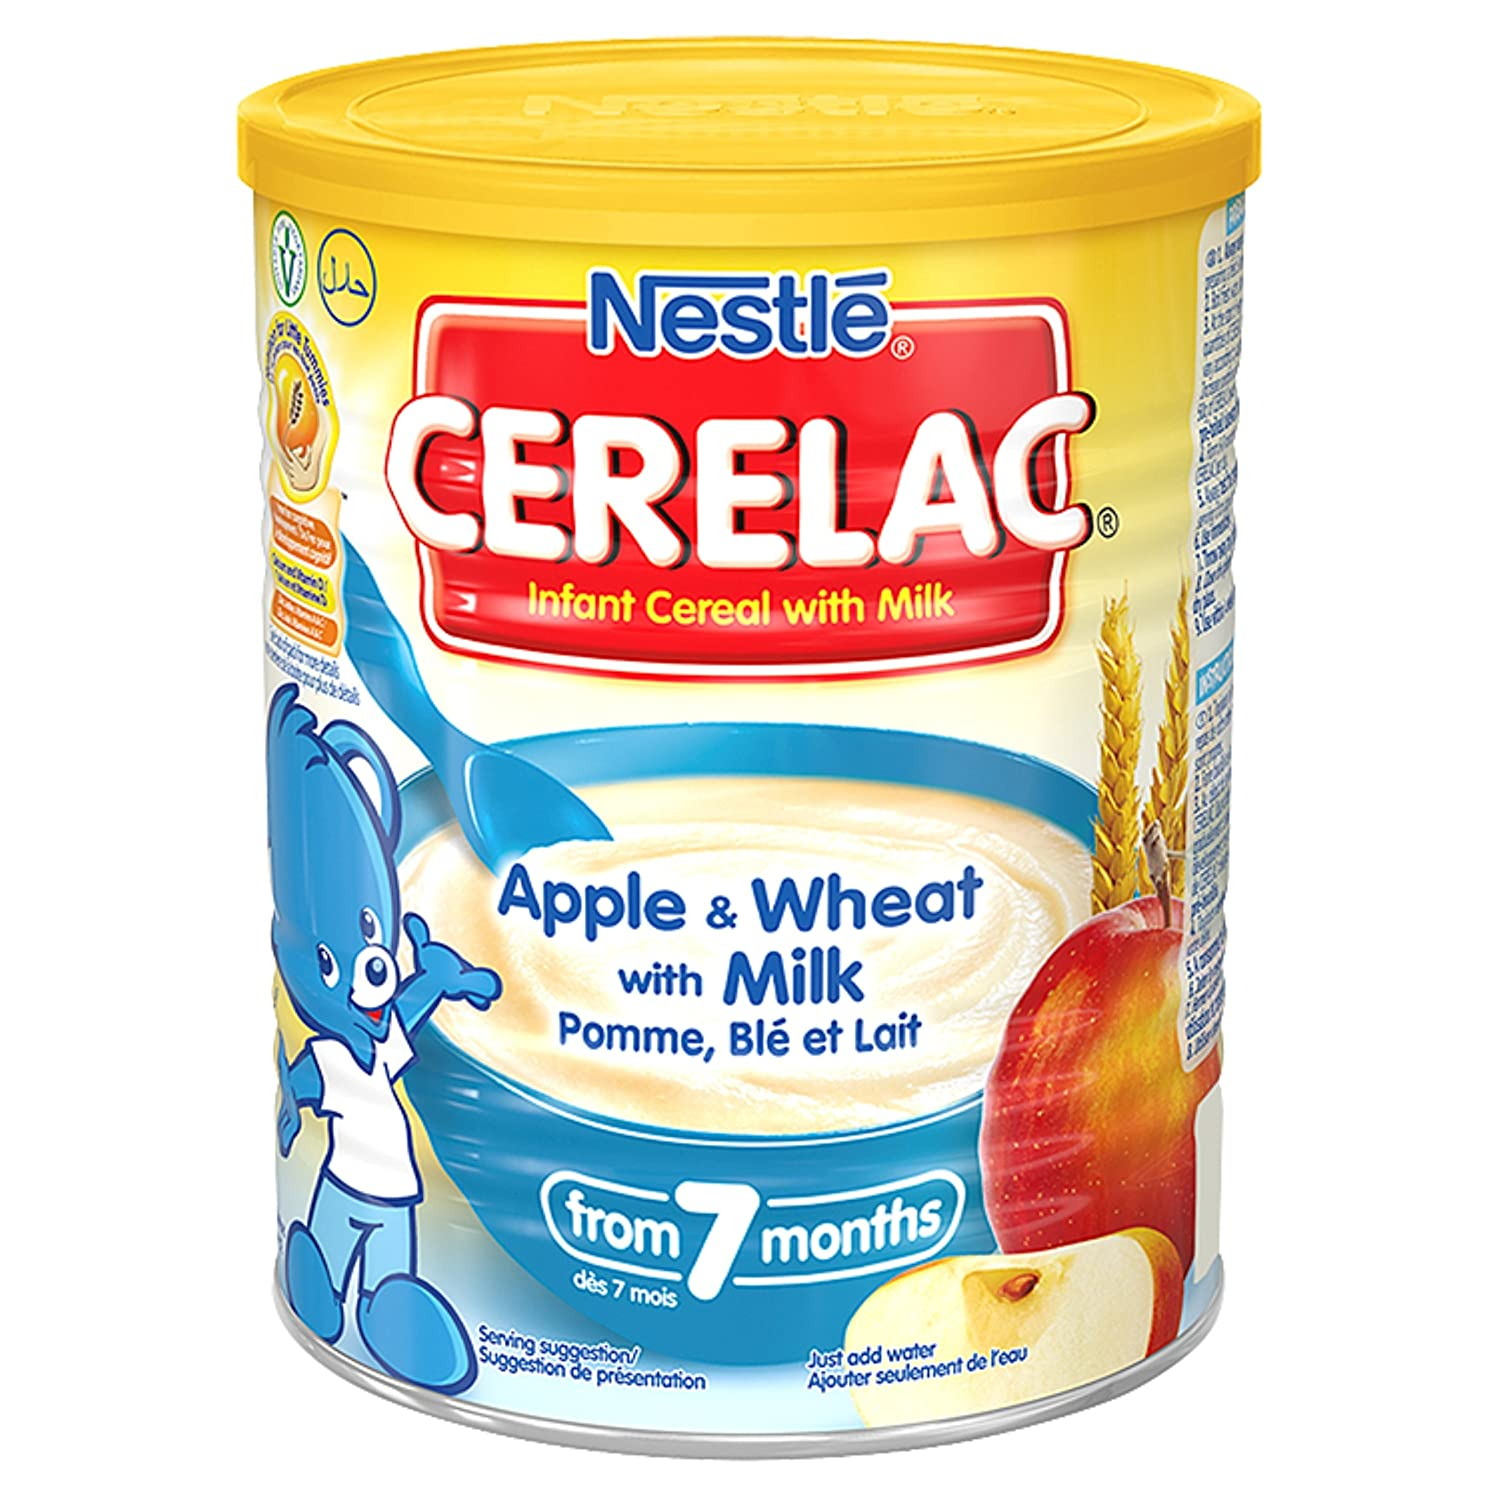 Nestl? Cerelac Infant Cereals Apple And Wheat 400 g (Pack of 4) C05